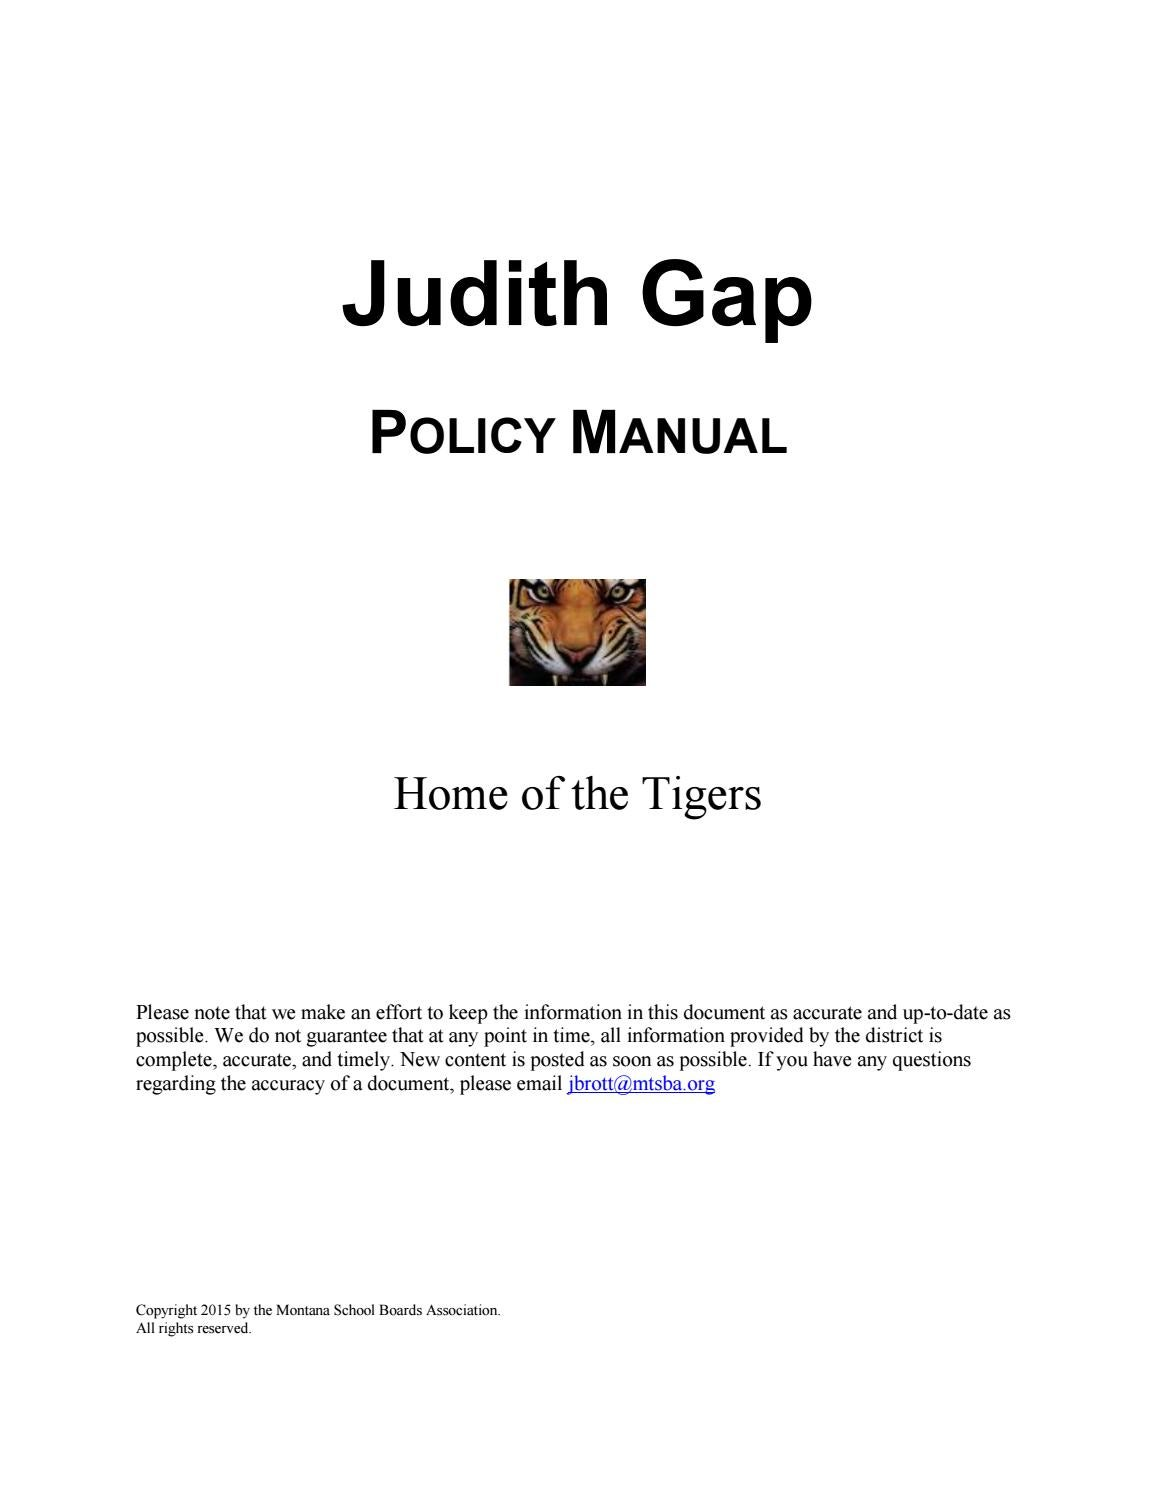 Judith Gap Public Schools Policy Manual by Montana School